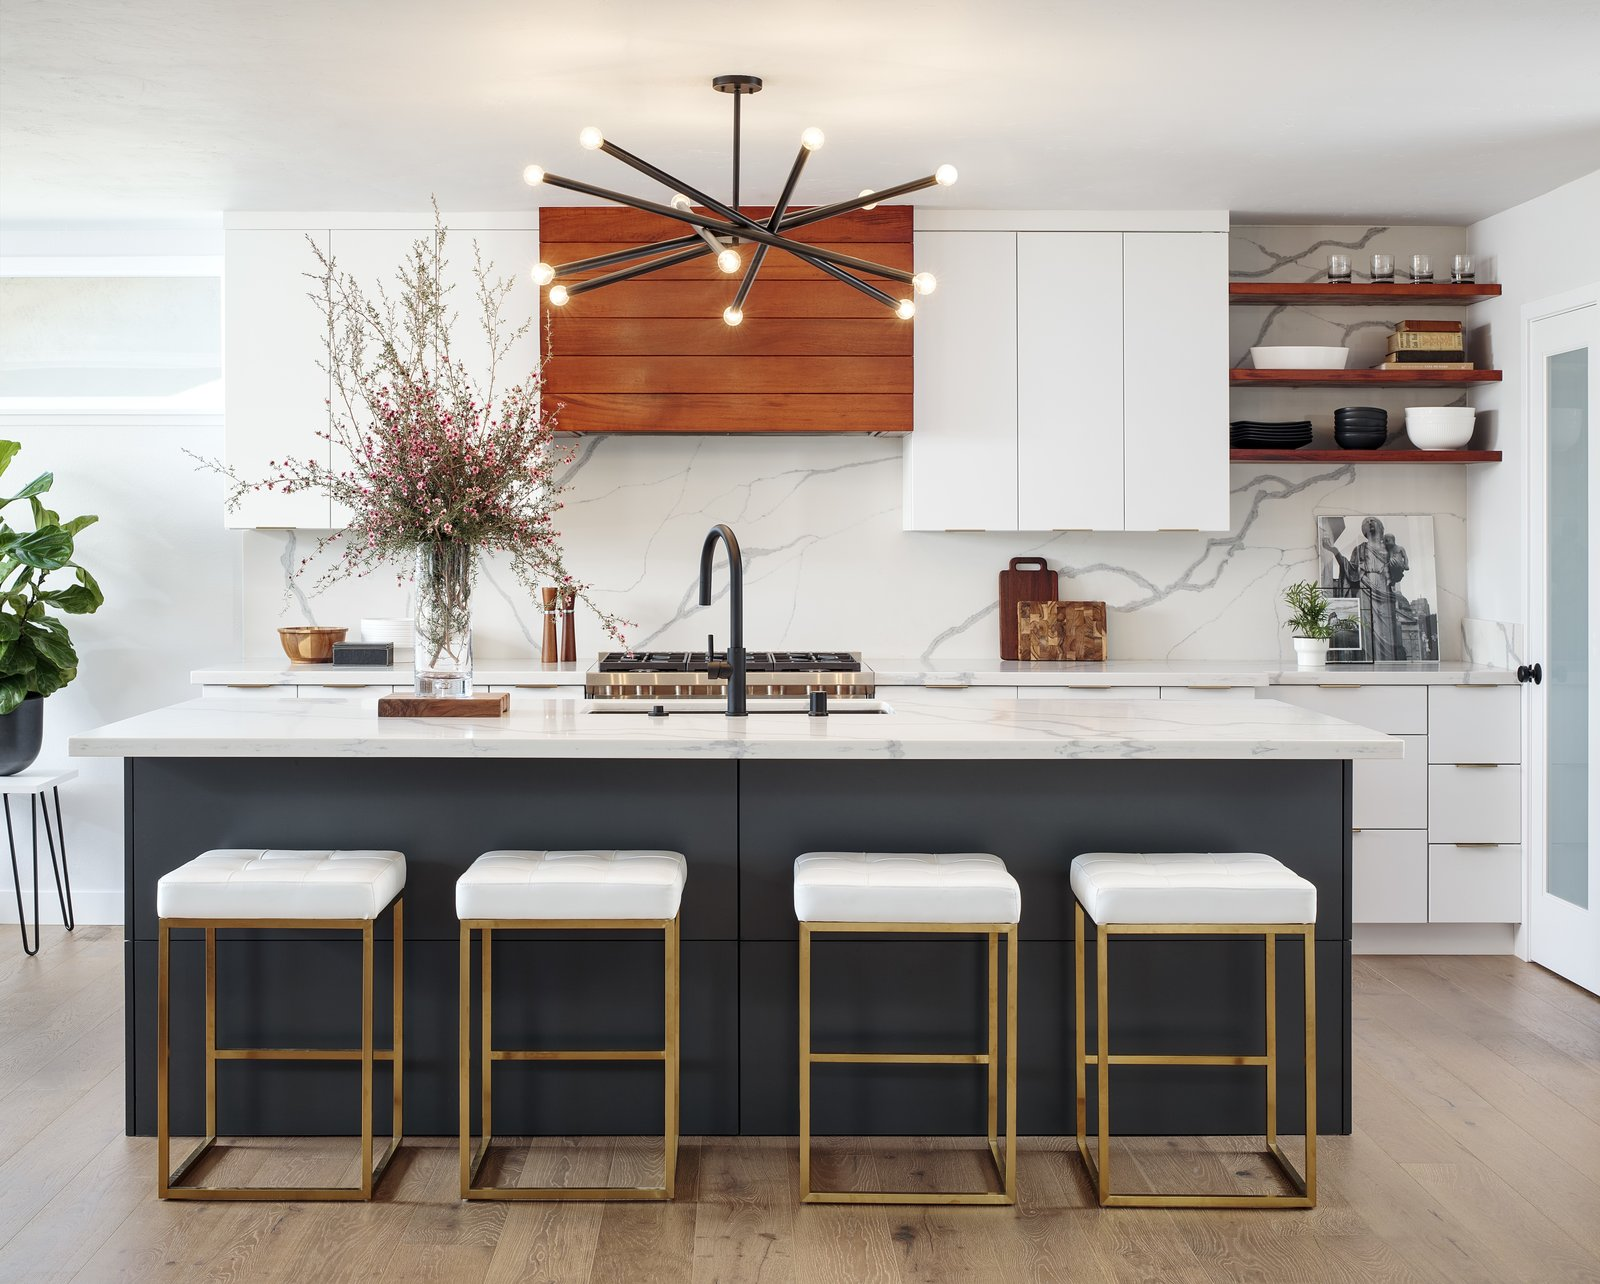 White cabinetry and white marble match against wooden accents in a Contemporary kitchen